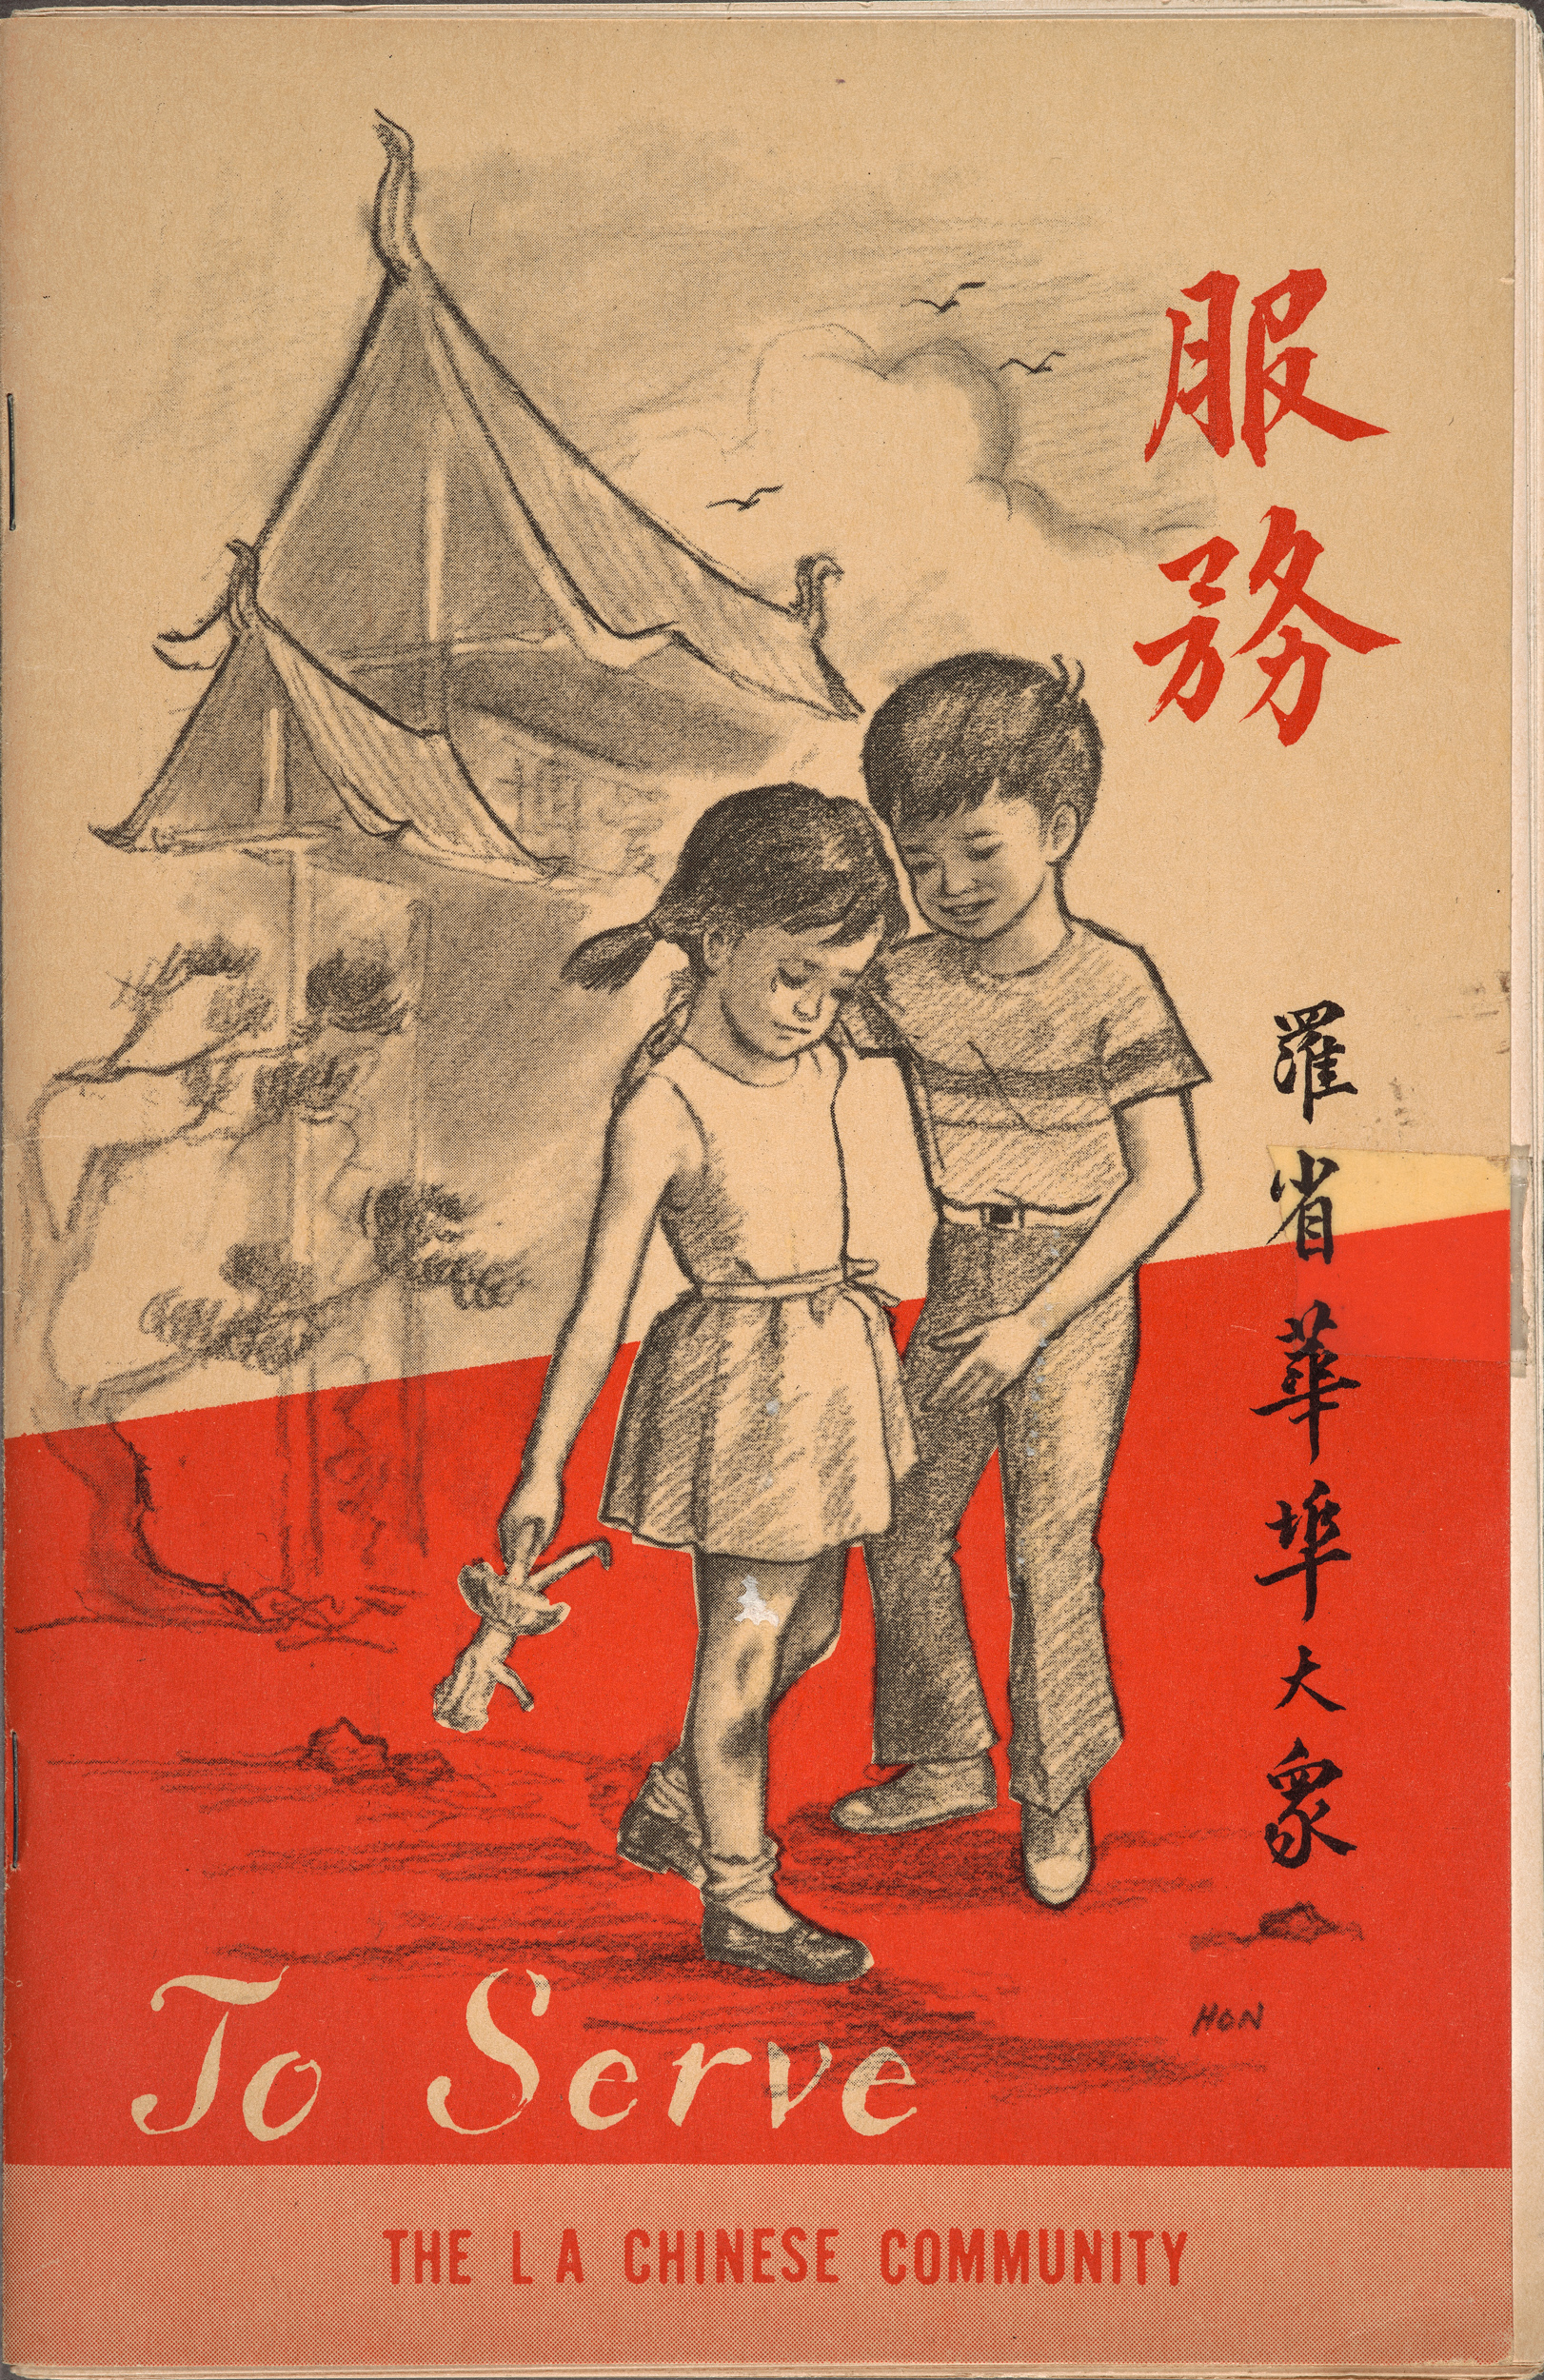 Bilingual social services directory for the L.A. Chinese community (1960s)